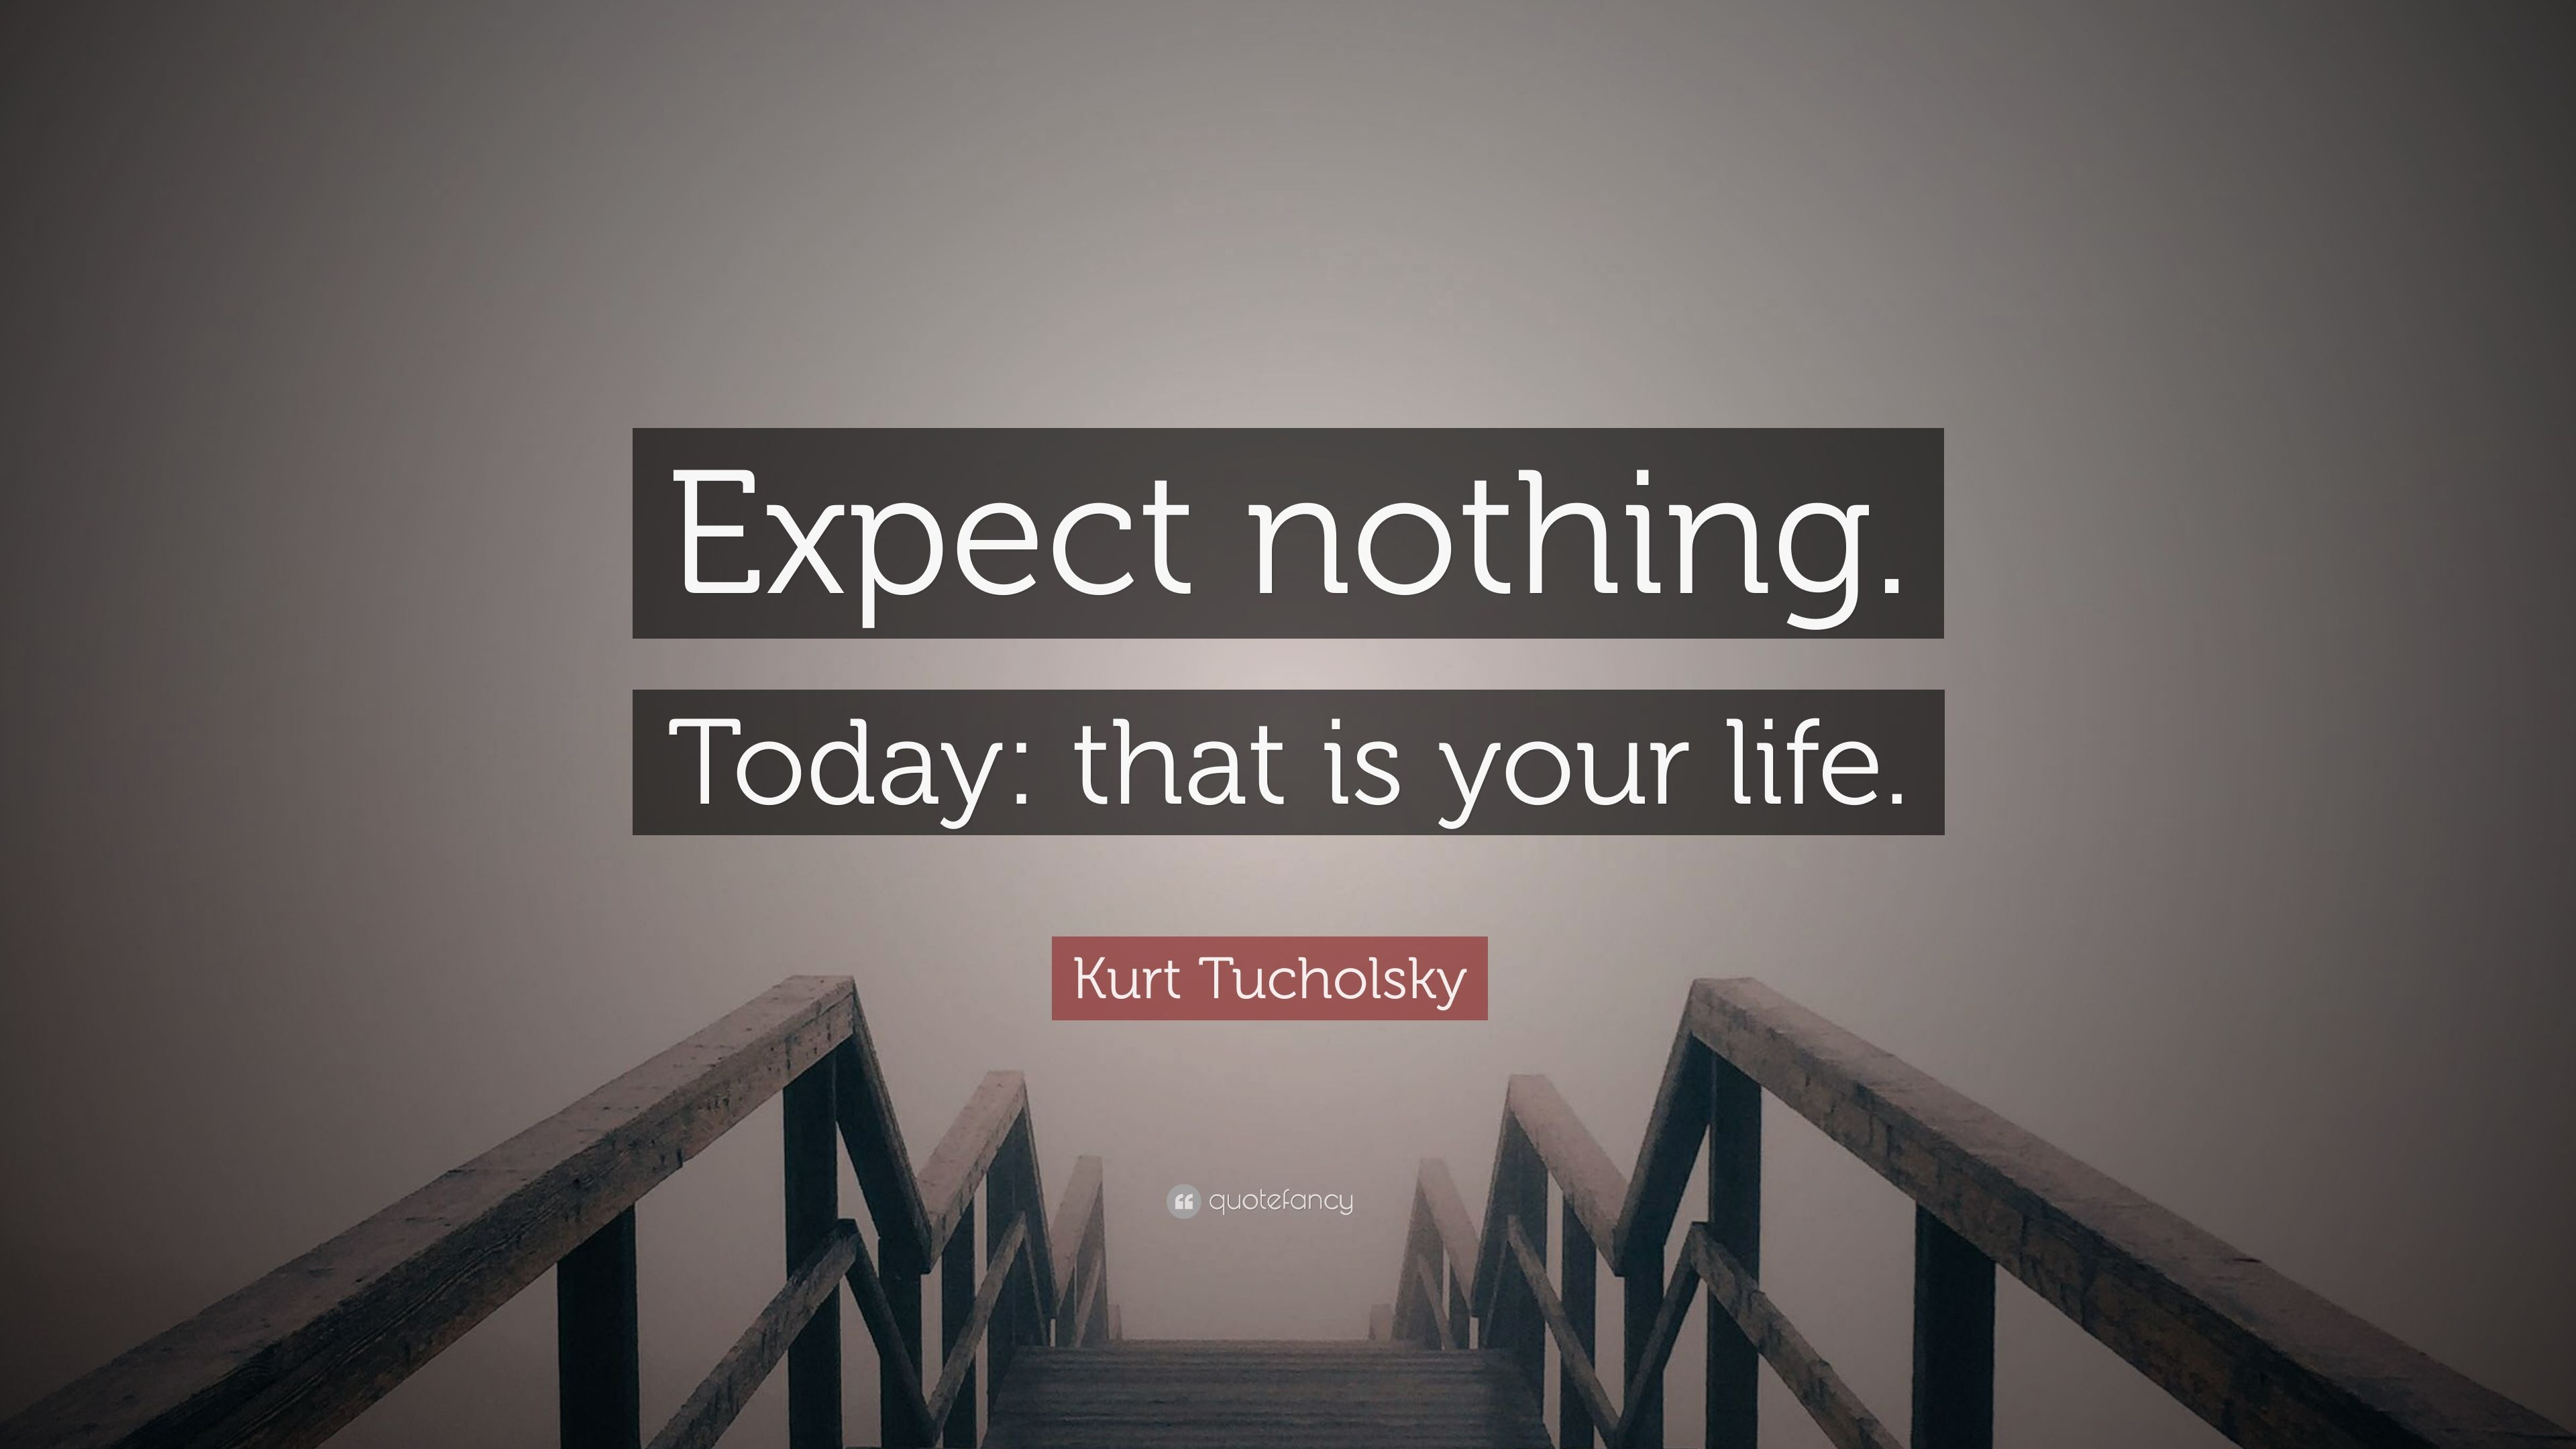 Kurt Tucholsky Quote: U201cExpect Nothing. Today: That Is Your Life.u201d